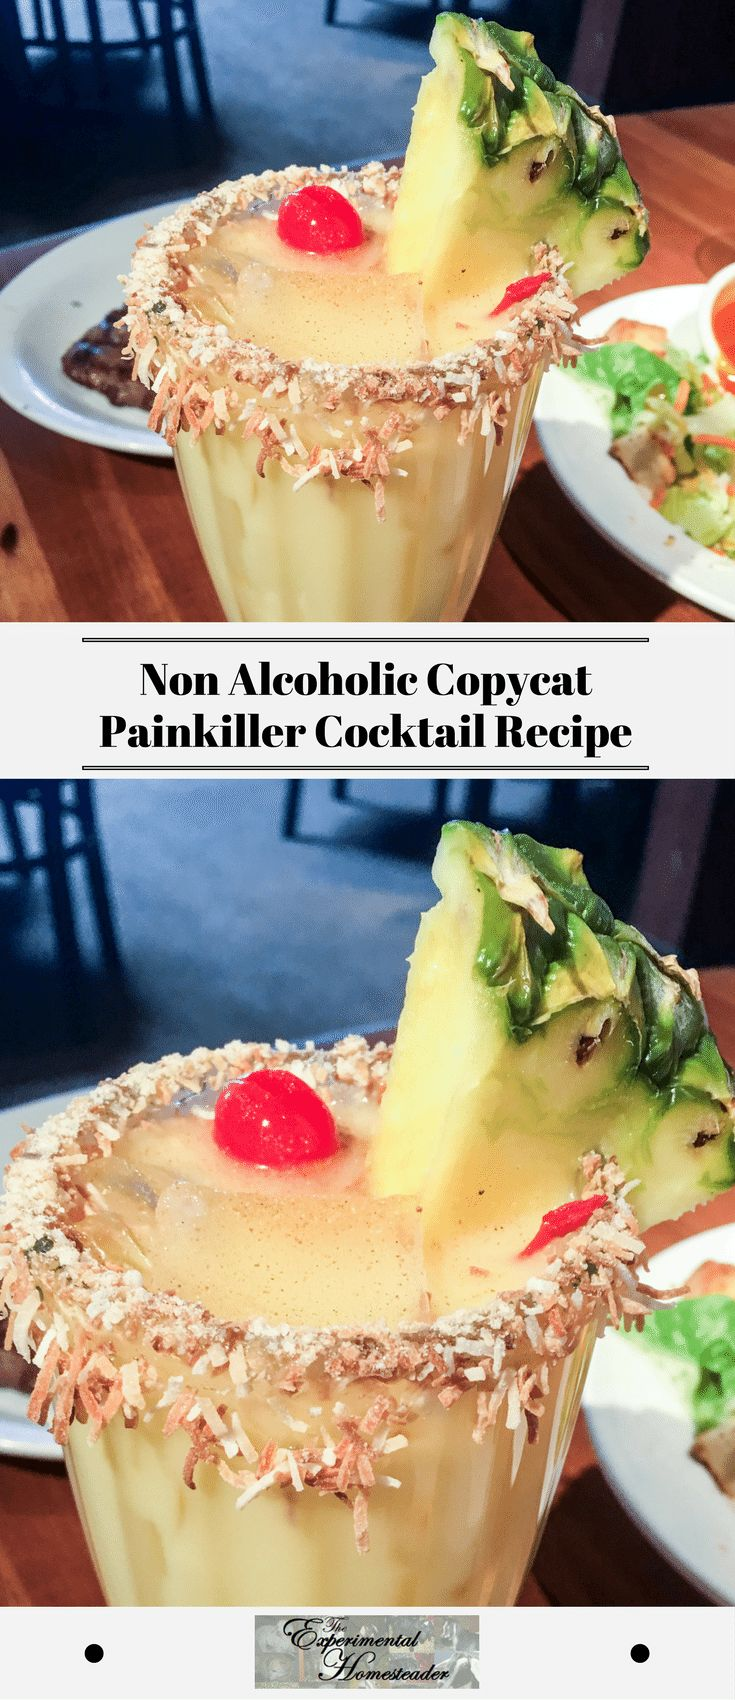 When it comes to non alcoholic tropical drinks, this copycat painkiller cocktail needs to be at the top of the list for easy tasty drinks. #painkillercocktail #nonalcoholictopcialdrinks #deliciousnonalcoholicdrinks #easytastydrinks #greatdrinkrecipes